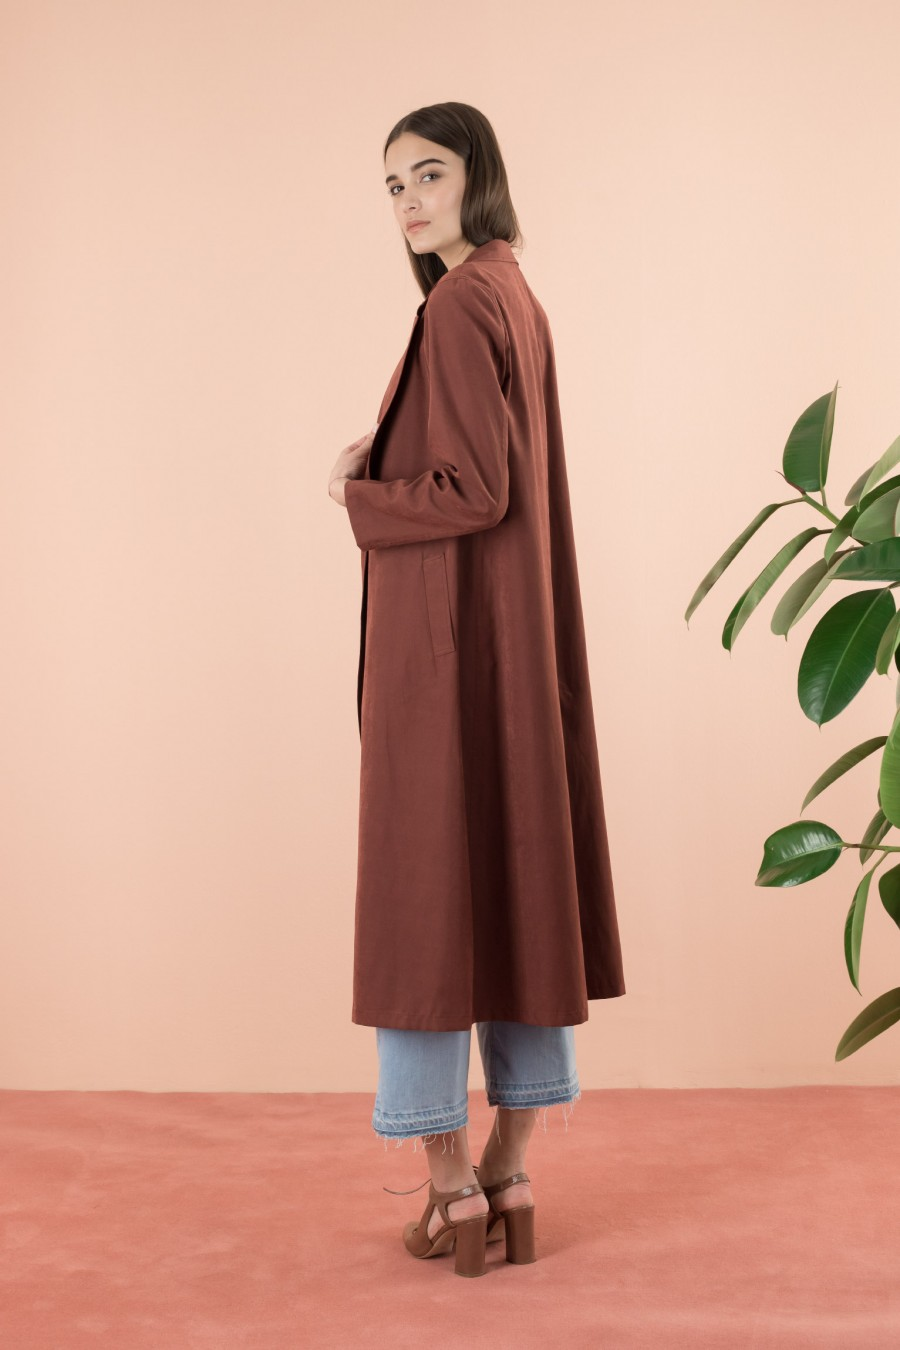 Burgundy overcoat with belt